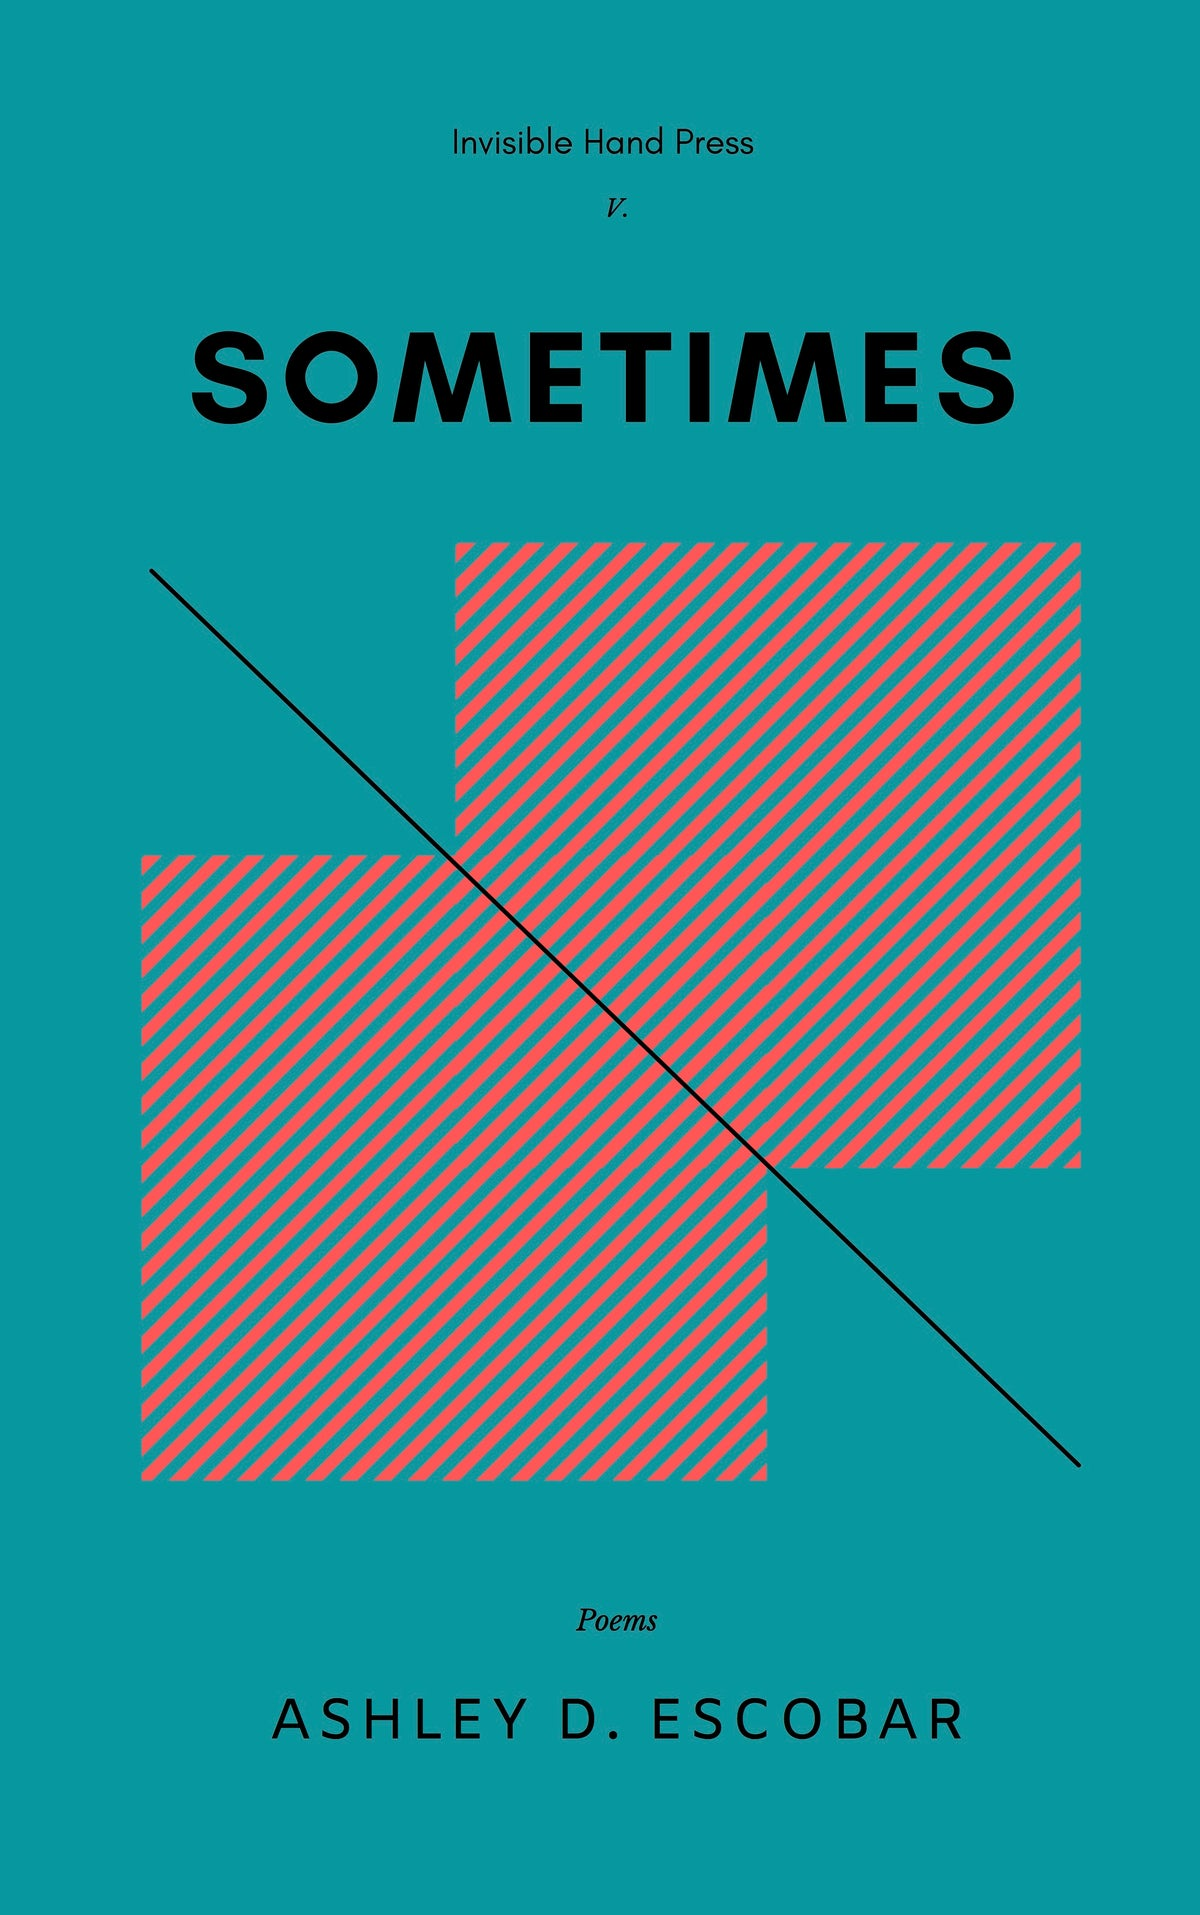 Image of SOMETIMES by Ashley D. Escobar - Published 25 March 2021